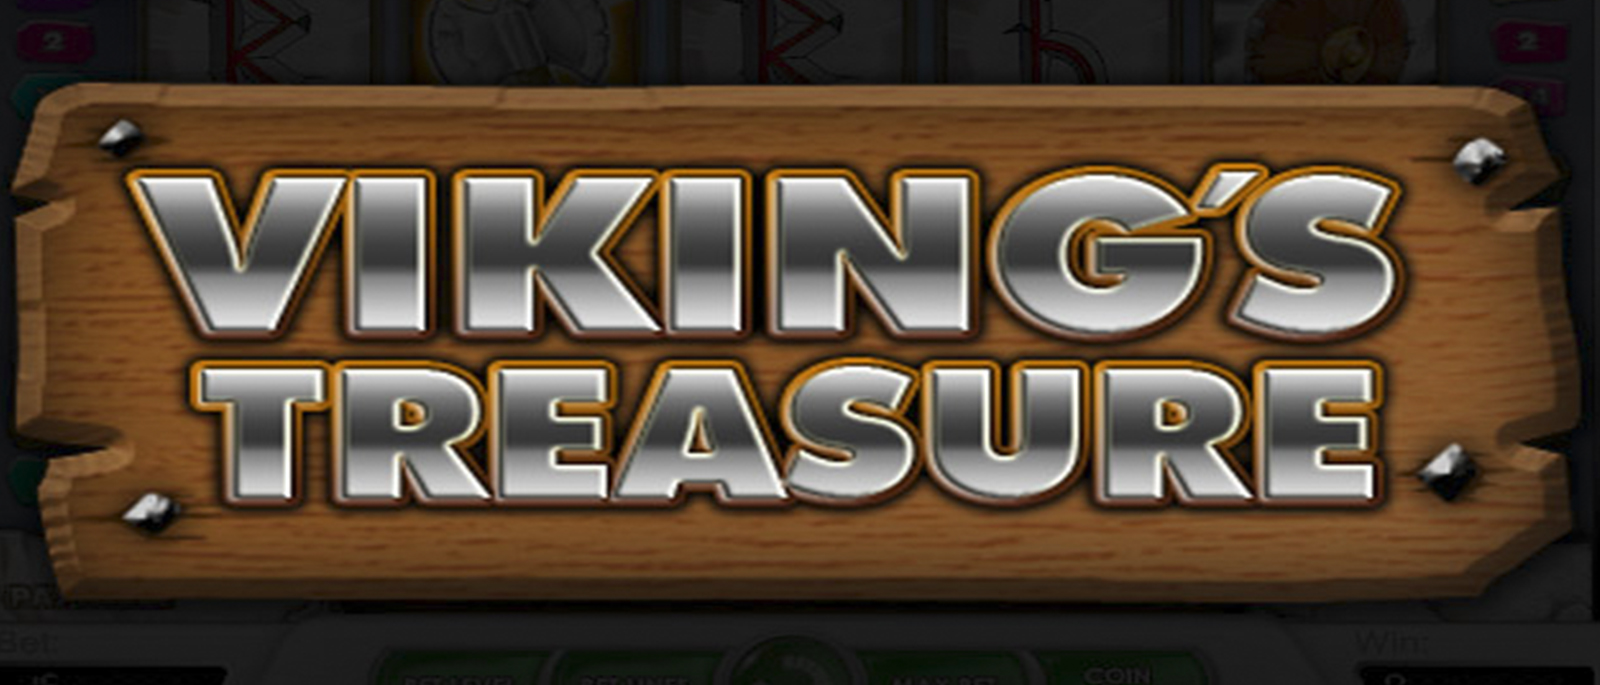 Vikings Treasure | online casino slots | Casumo